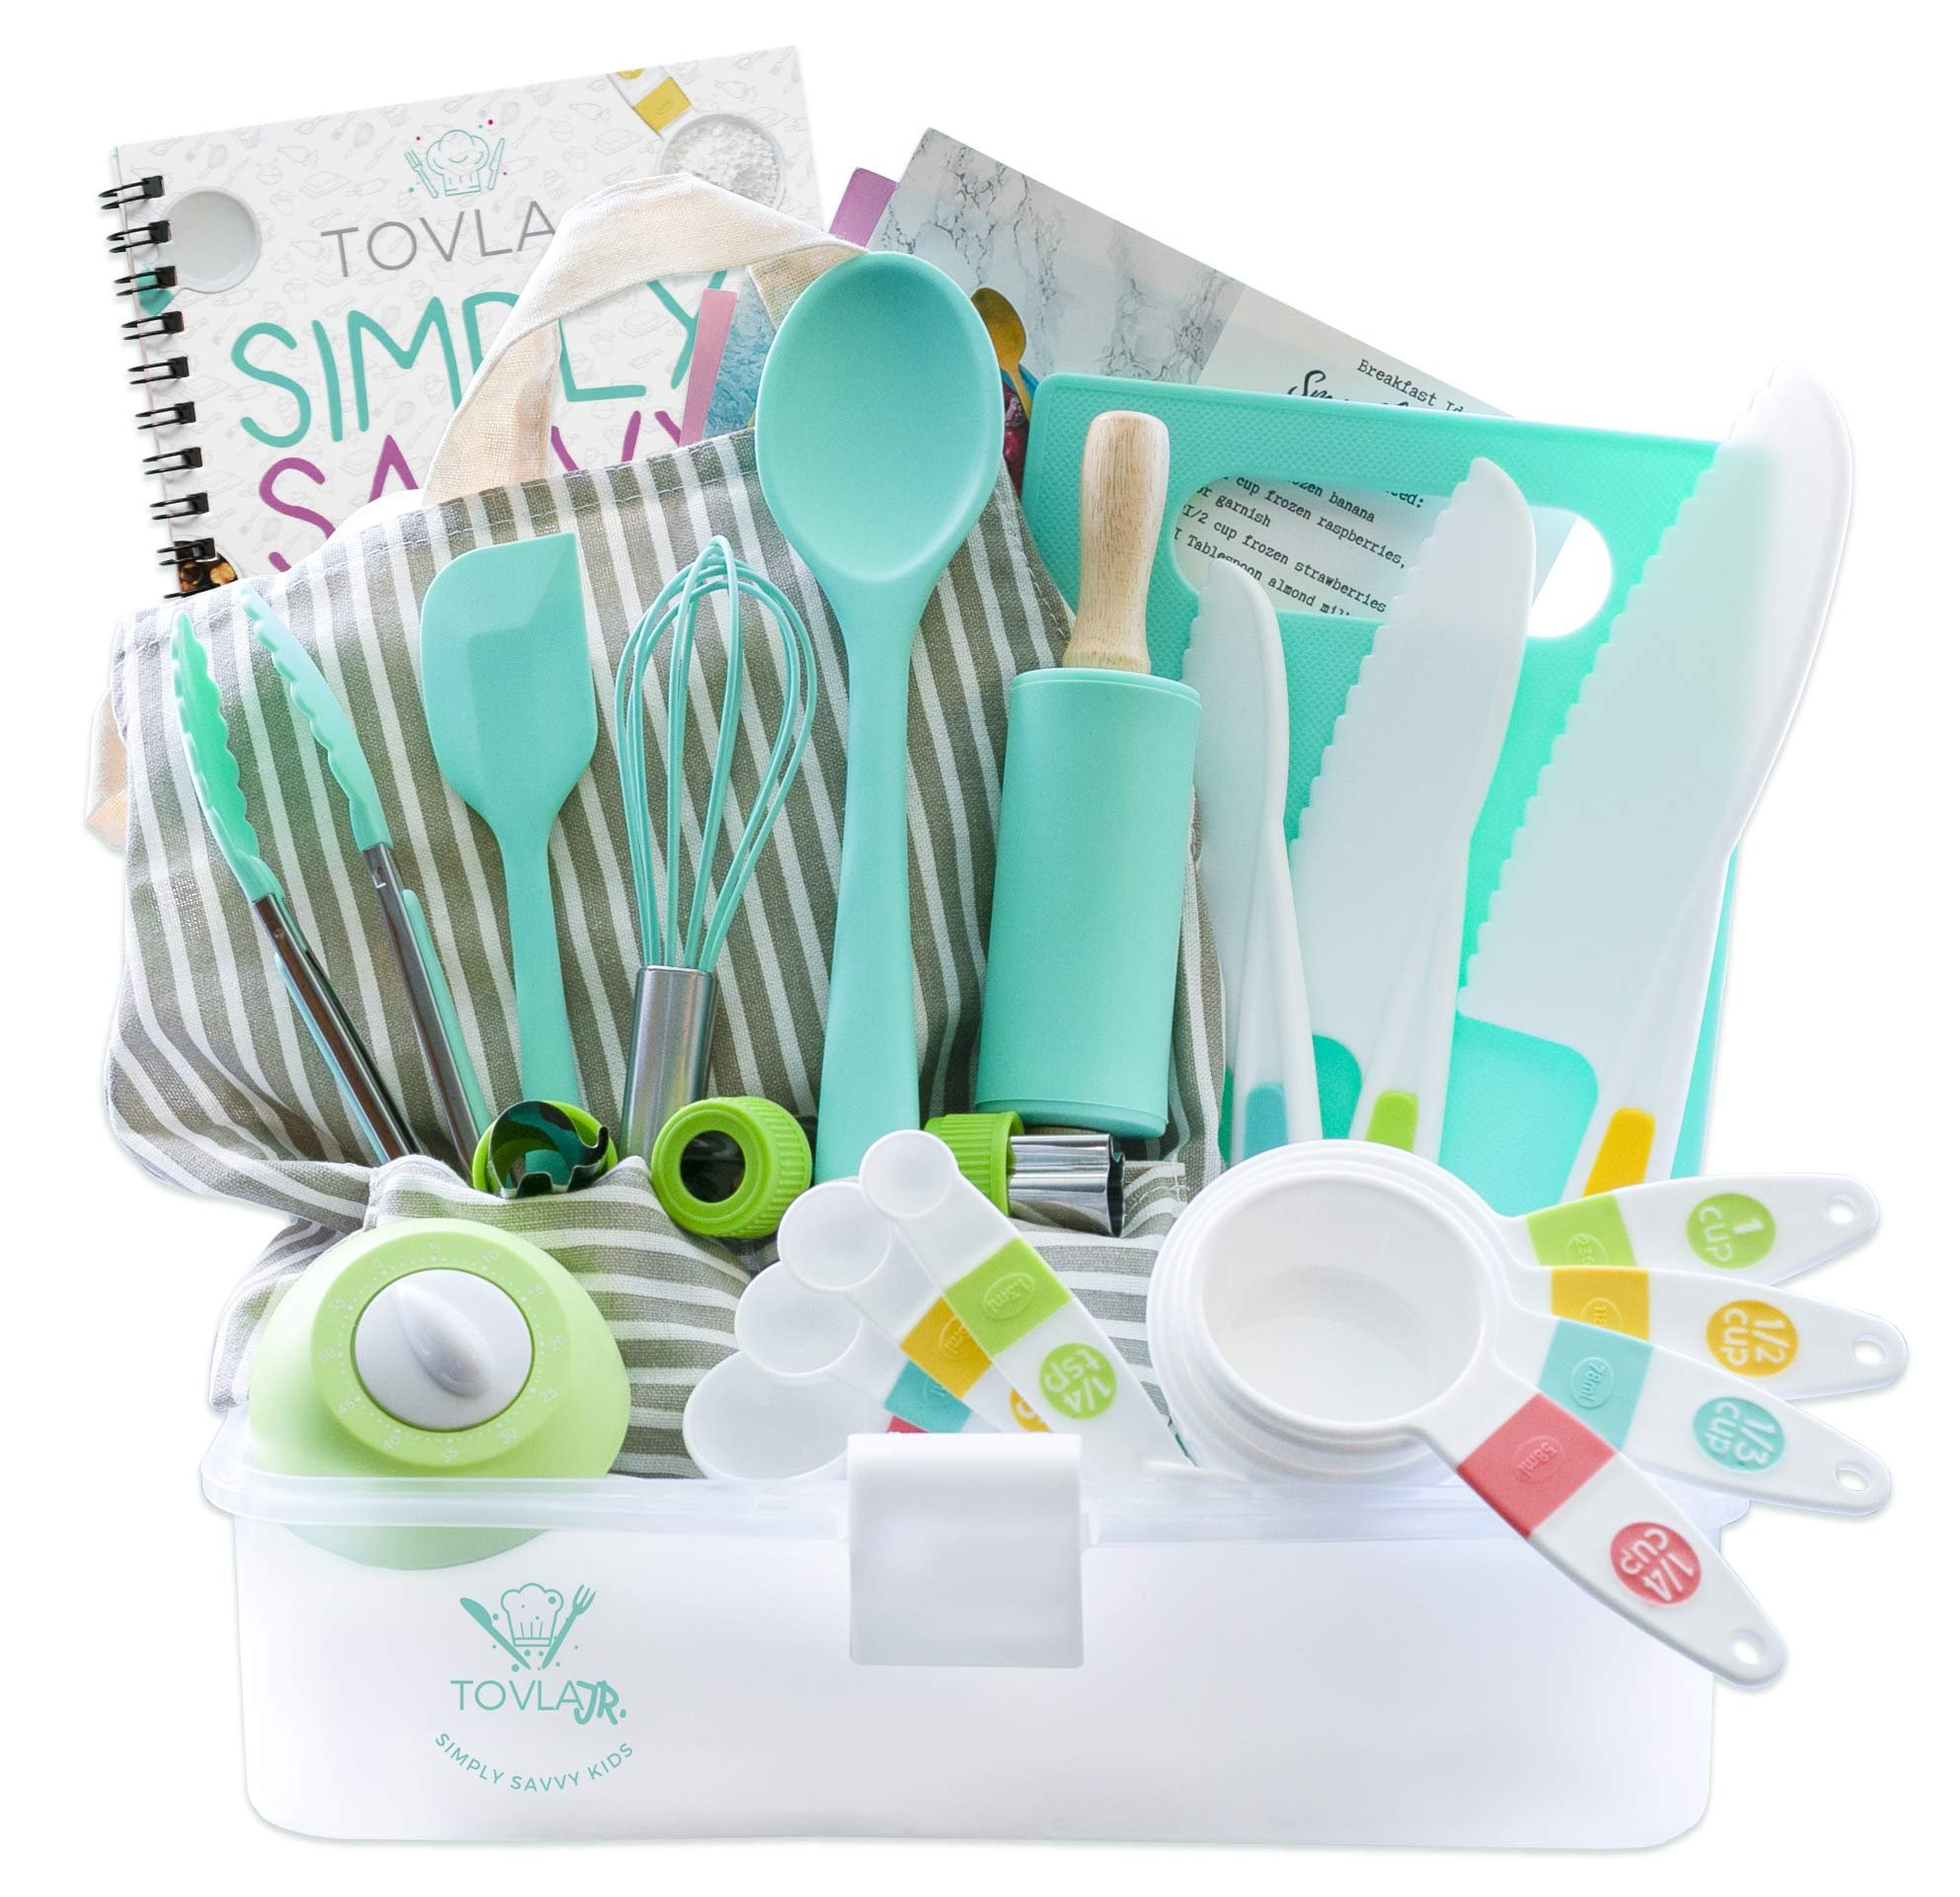 Tovla Jr. Kids Cooking and Baking Set with Storage Case